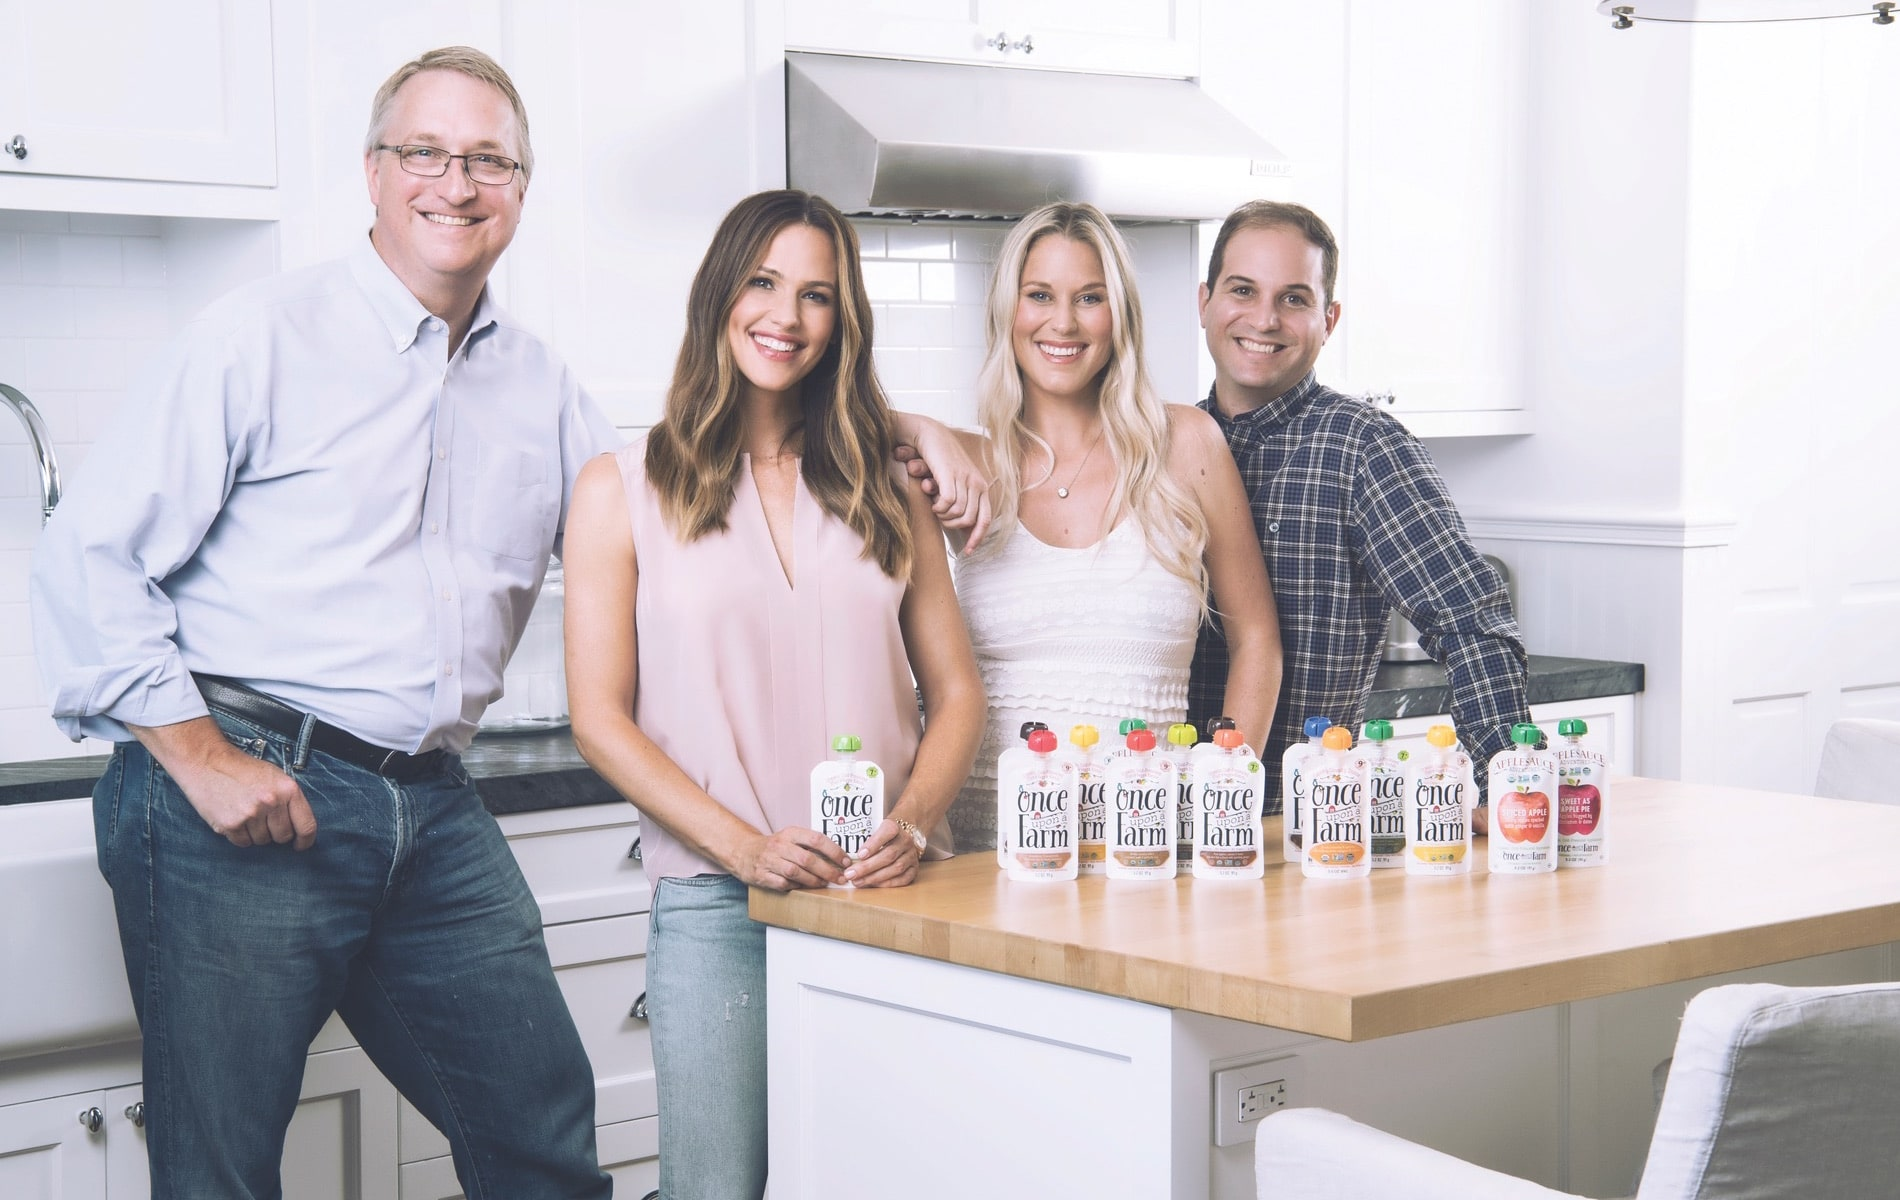 Once Upon a Farm cofounders John Foraker, Jennifer Garner, Cassandra Curtis, and Ari Raz